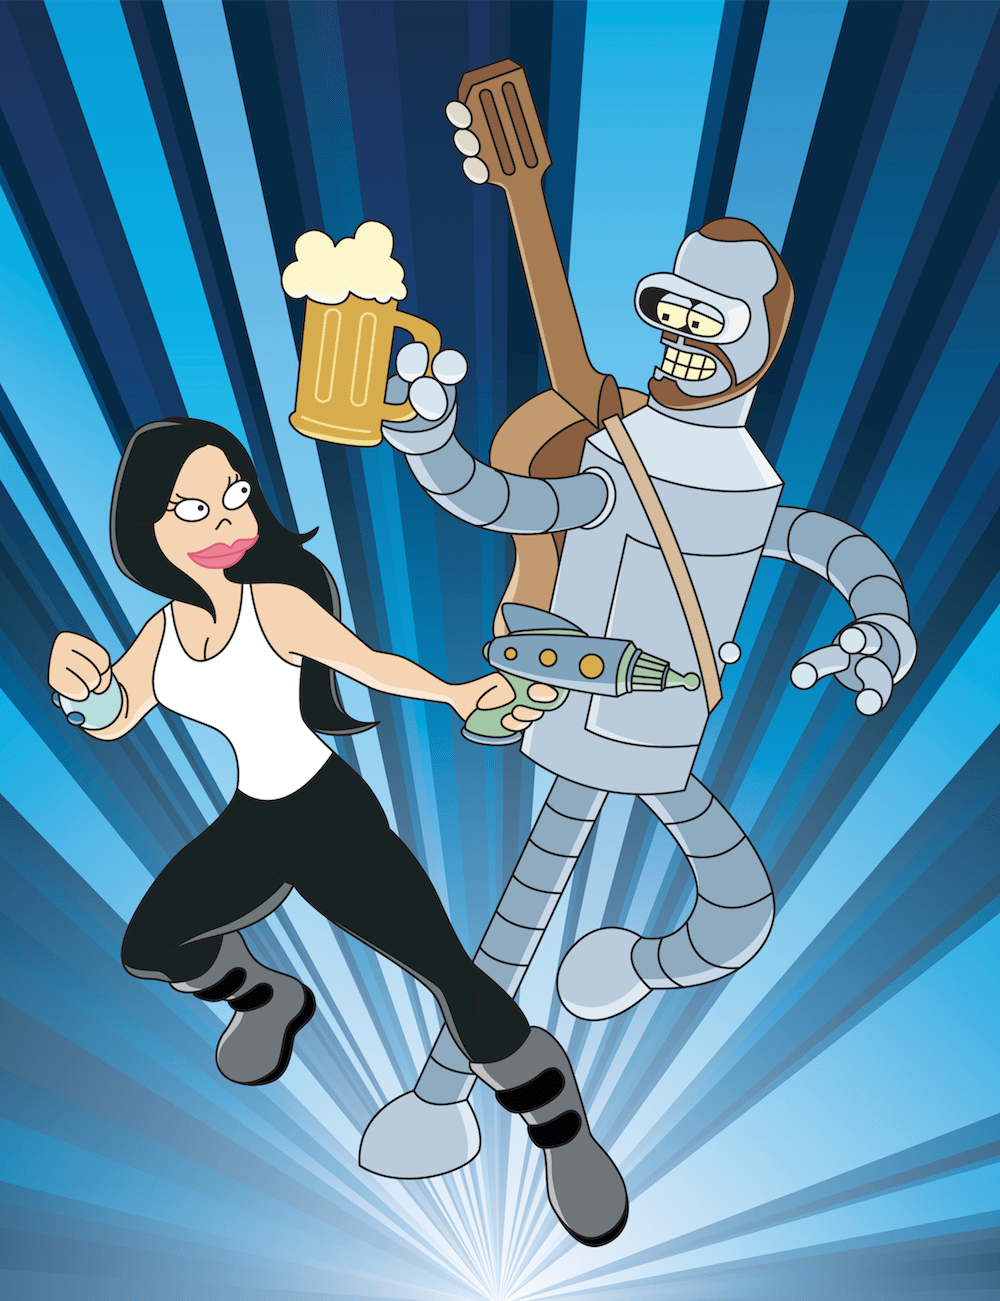 Futurama Inspired Dianne and Taylor by ArtOfRam via ArtCorgi